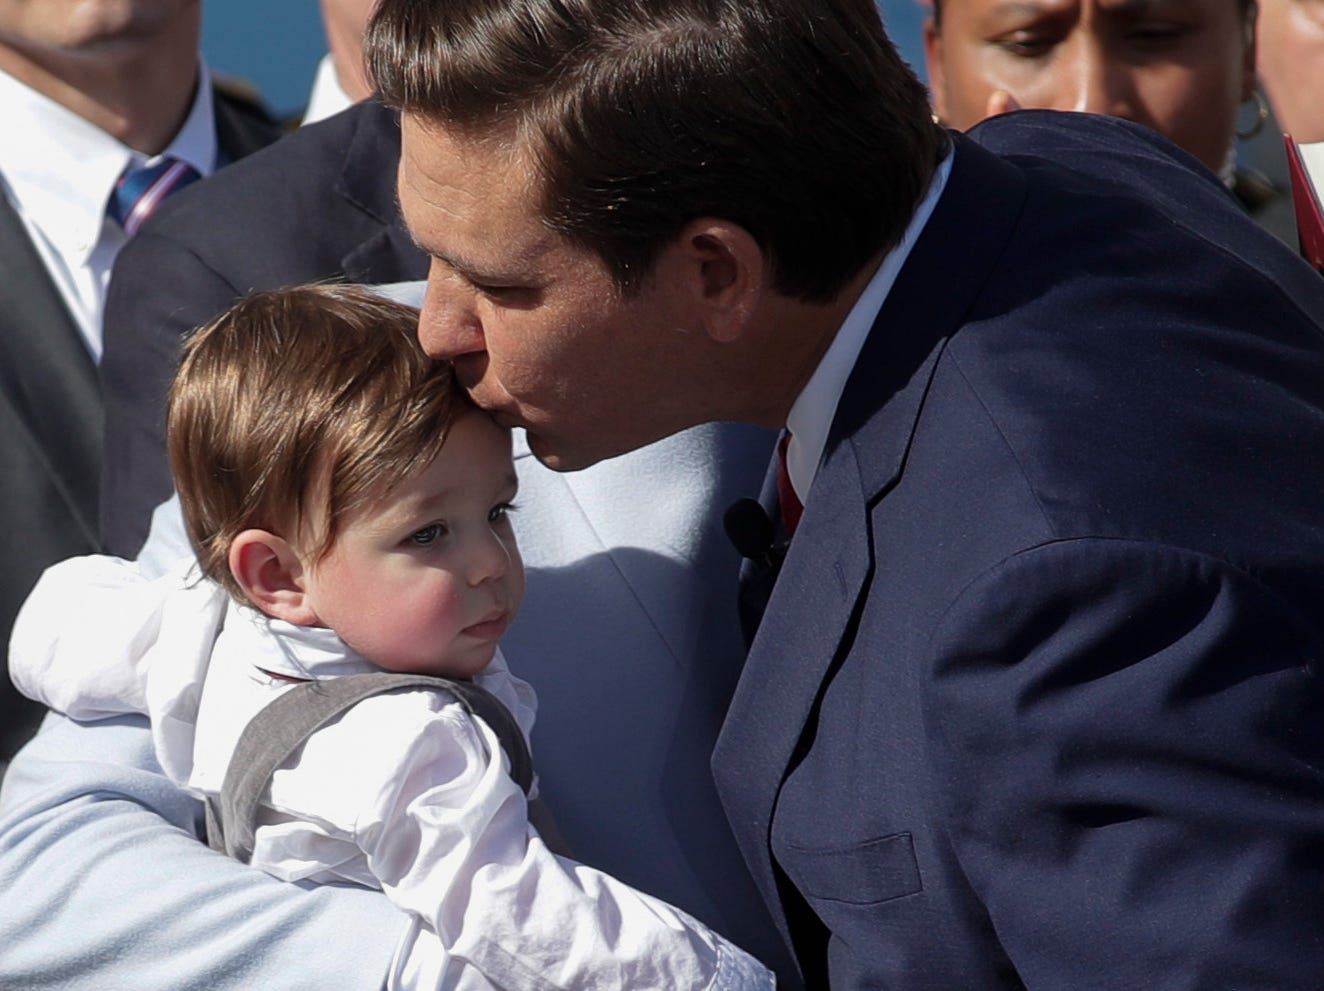 Gov. Ron DeSantis kisses his son Mason on the forehead after taking the oath of office during the 2019 inauguration ceremony on the steps of the Historic Capitol Building in Tallahassee Tuesday, Jan. 8, 2019.